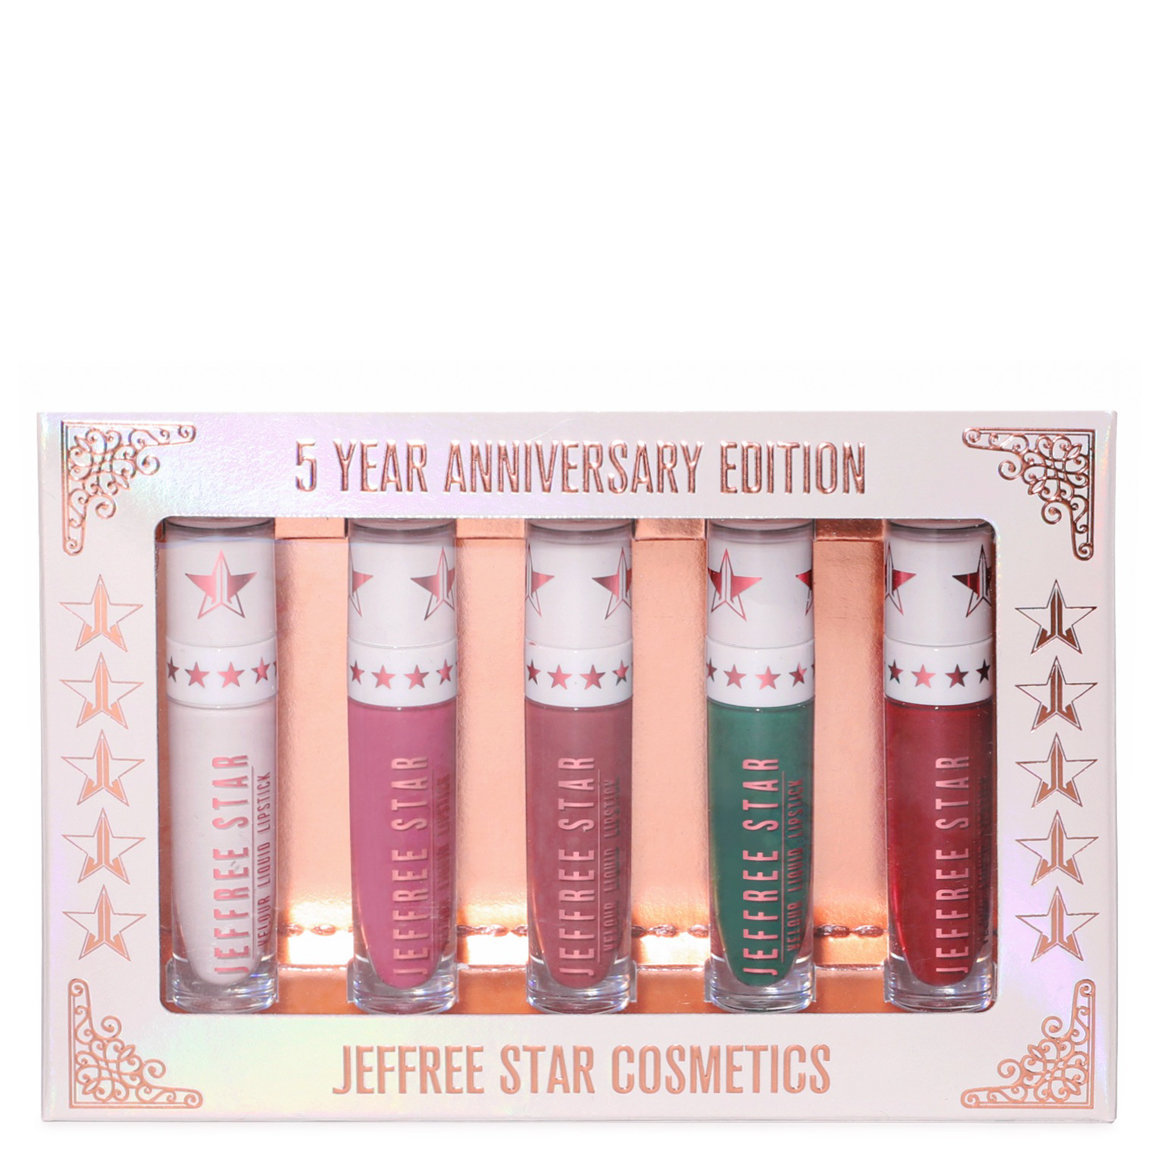 Jeffree Star Cosmetics 5 Year Anniversary Velour Liquid Lipstick Bundle product swatch.